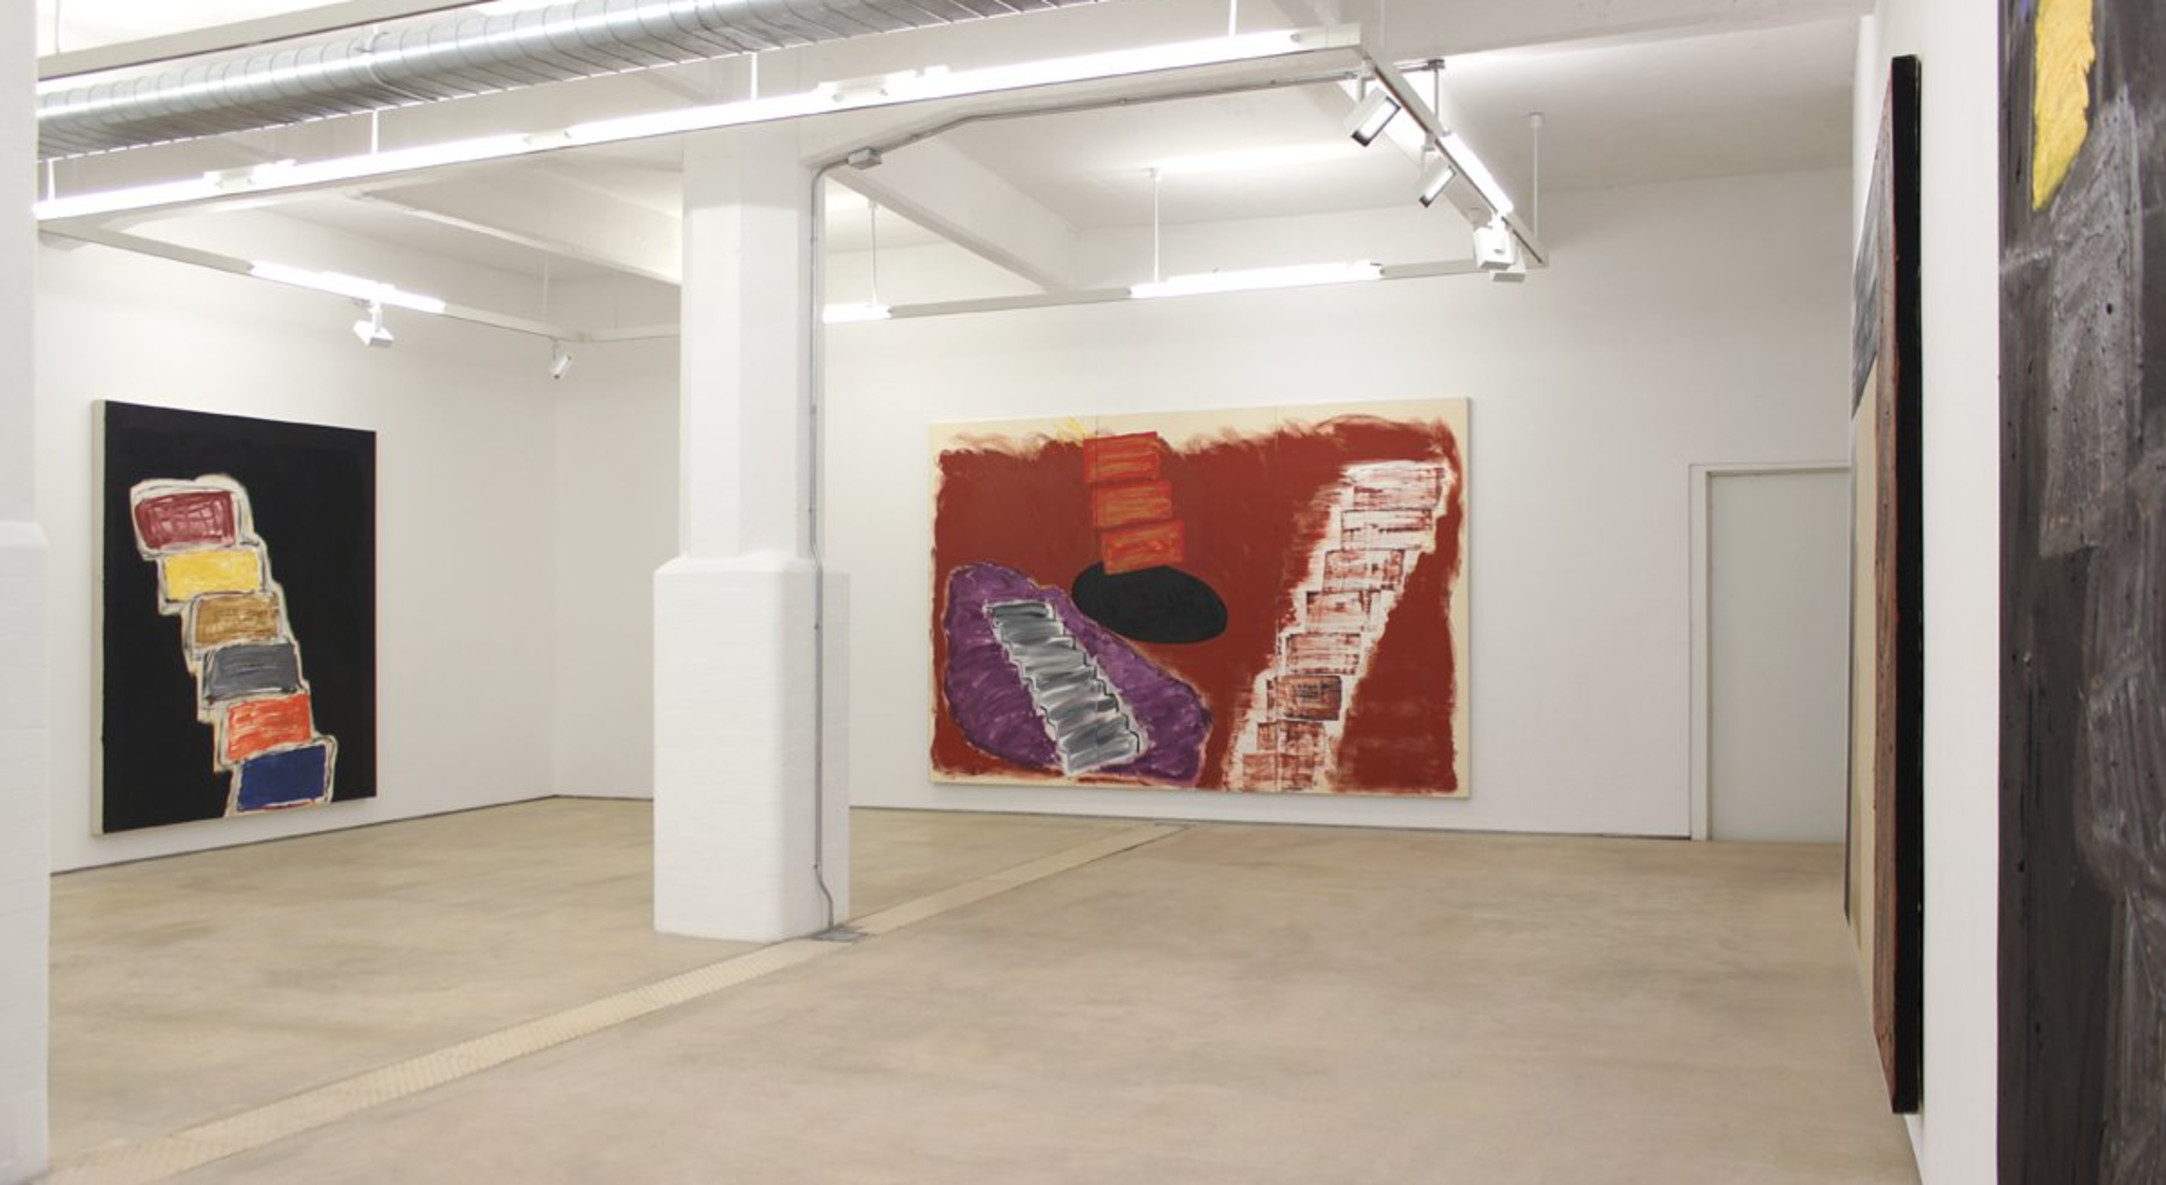 Installation view of Basil Beattie, Above and Below: Step Paintings 1990-2013 at Hales London